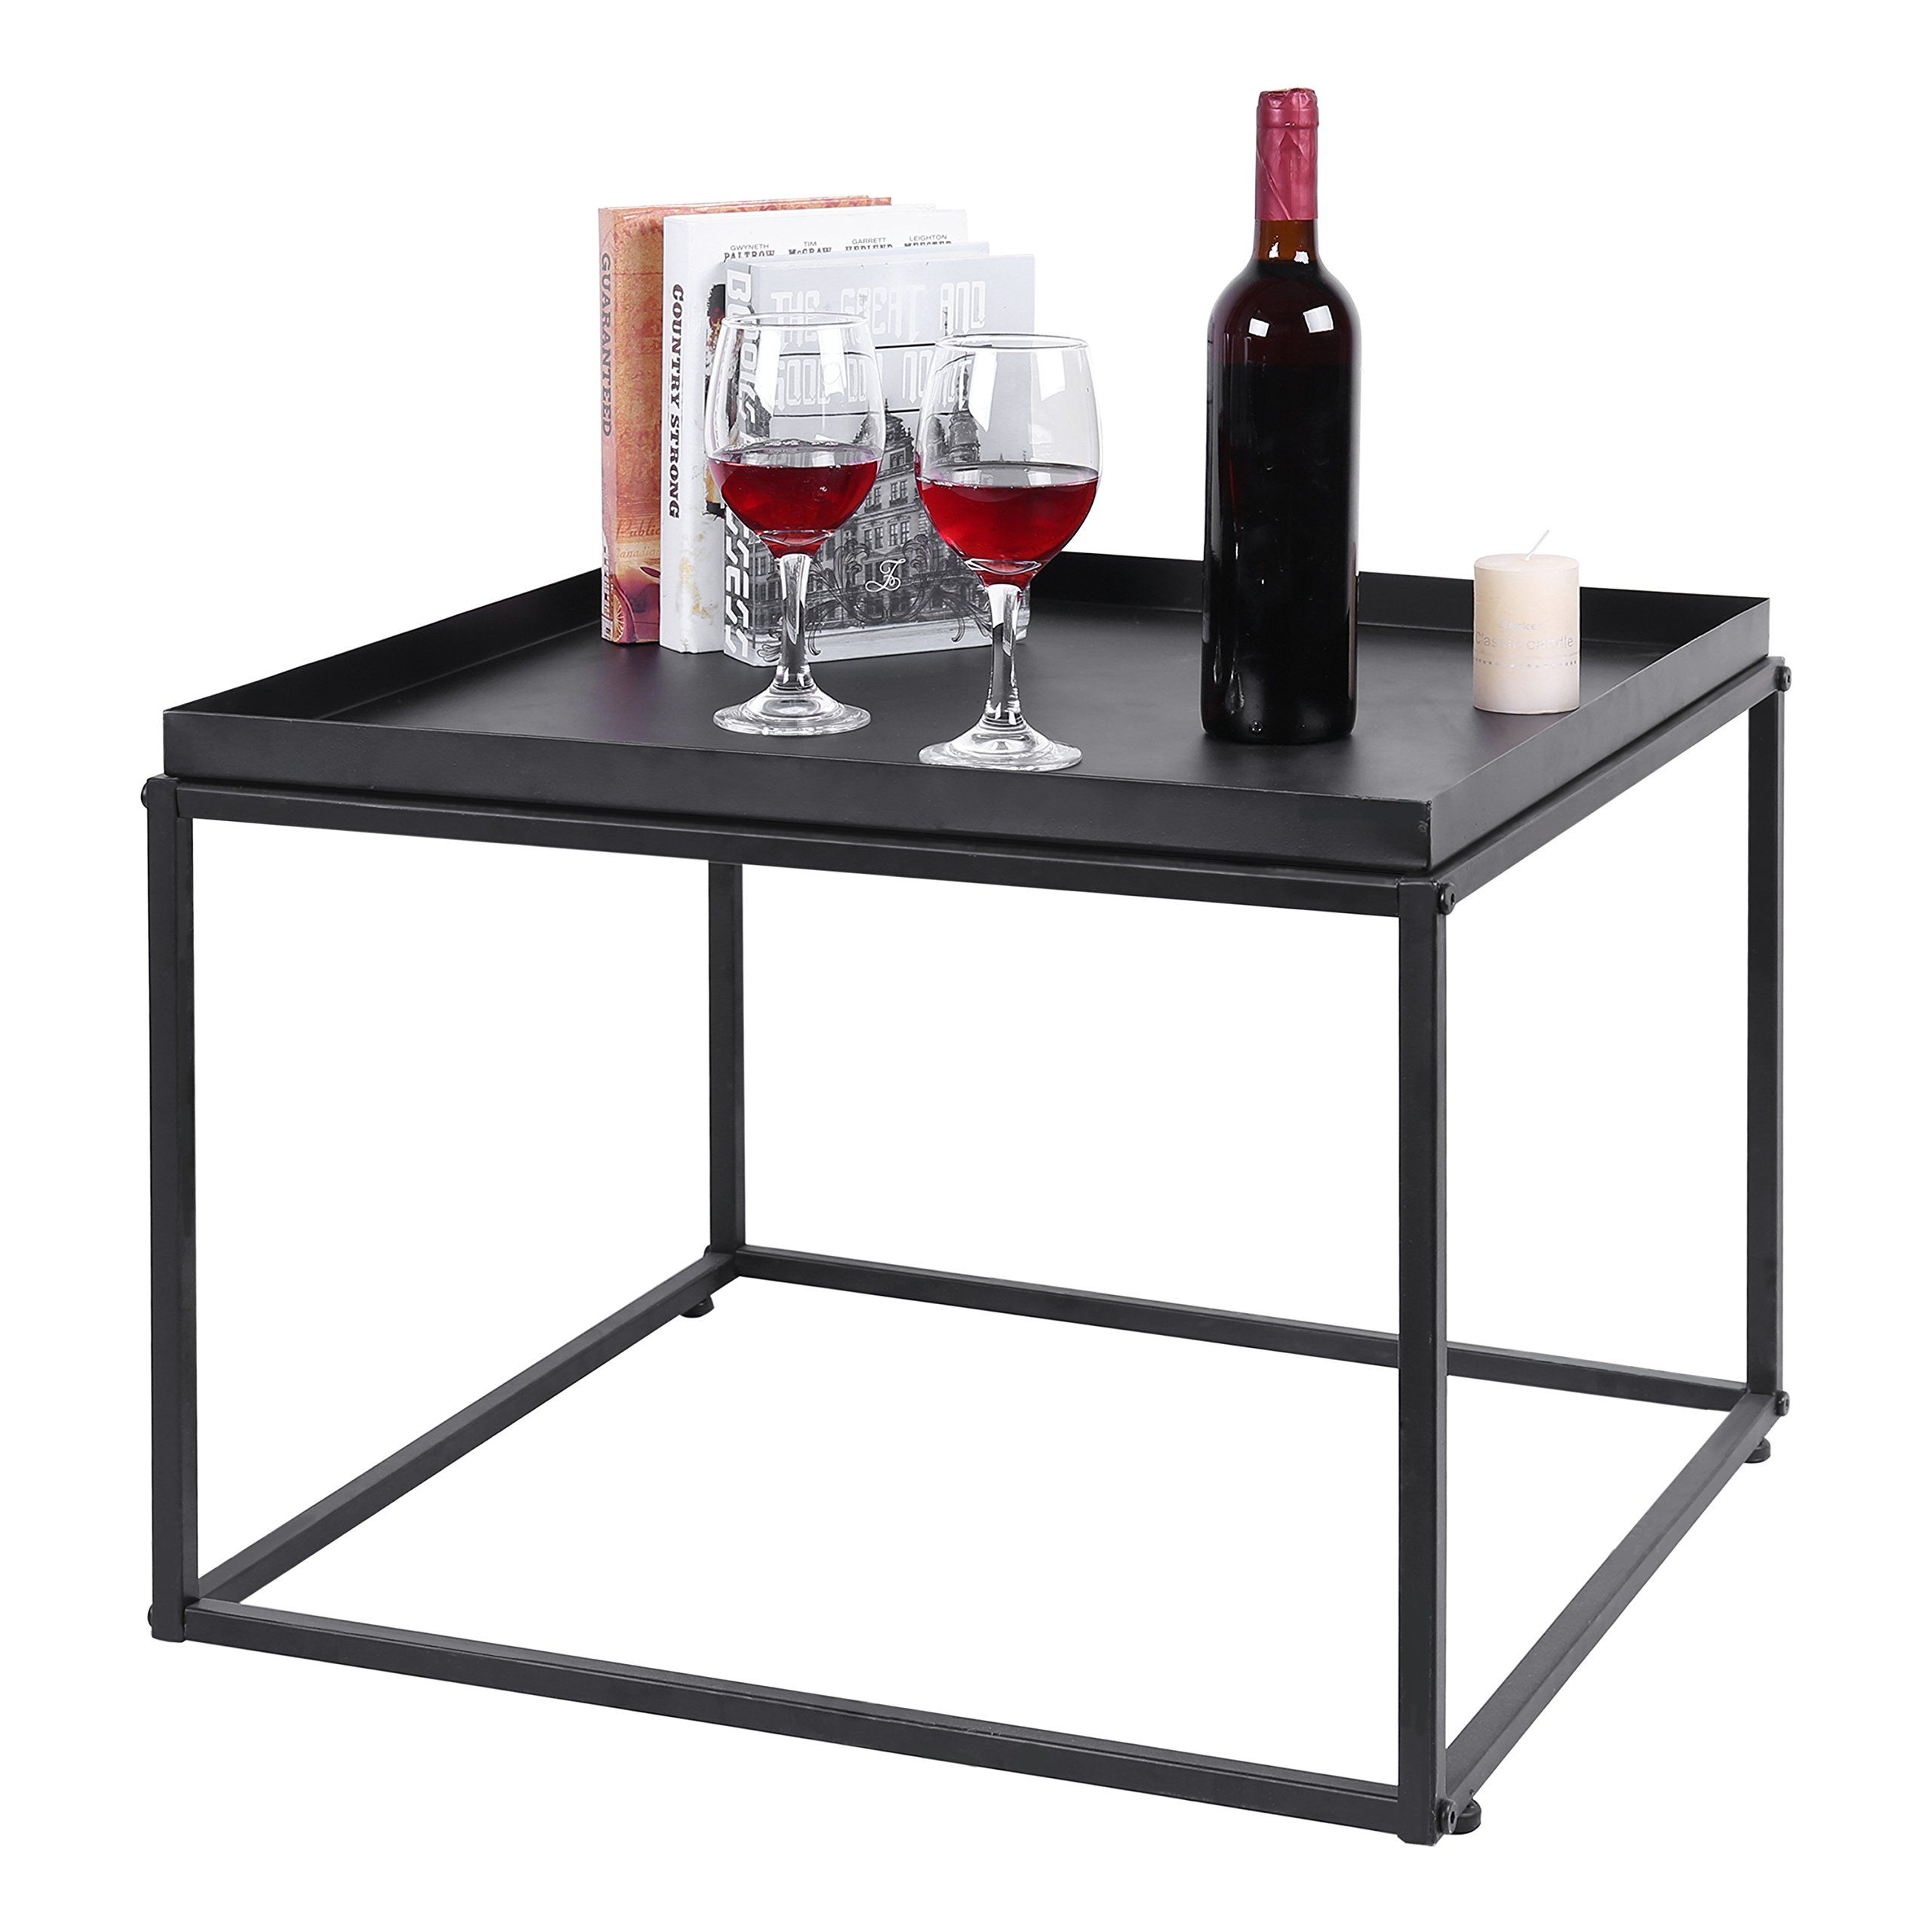 Mygift 24inch Modern Black Metal Square Tray Side Table Read More Reviews Of The Product By Visiting The Link Square Tray Living Room Furniture Side Table 24 inch square table